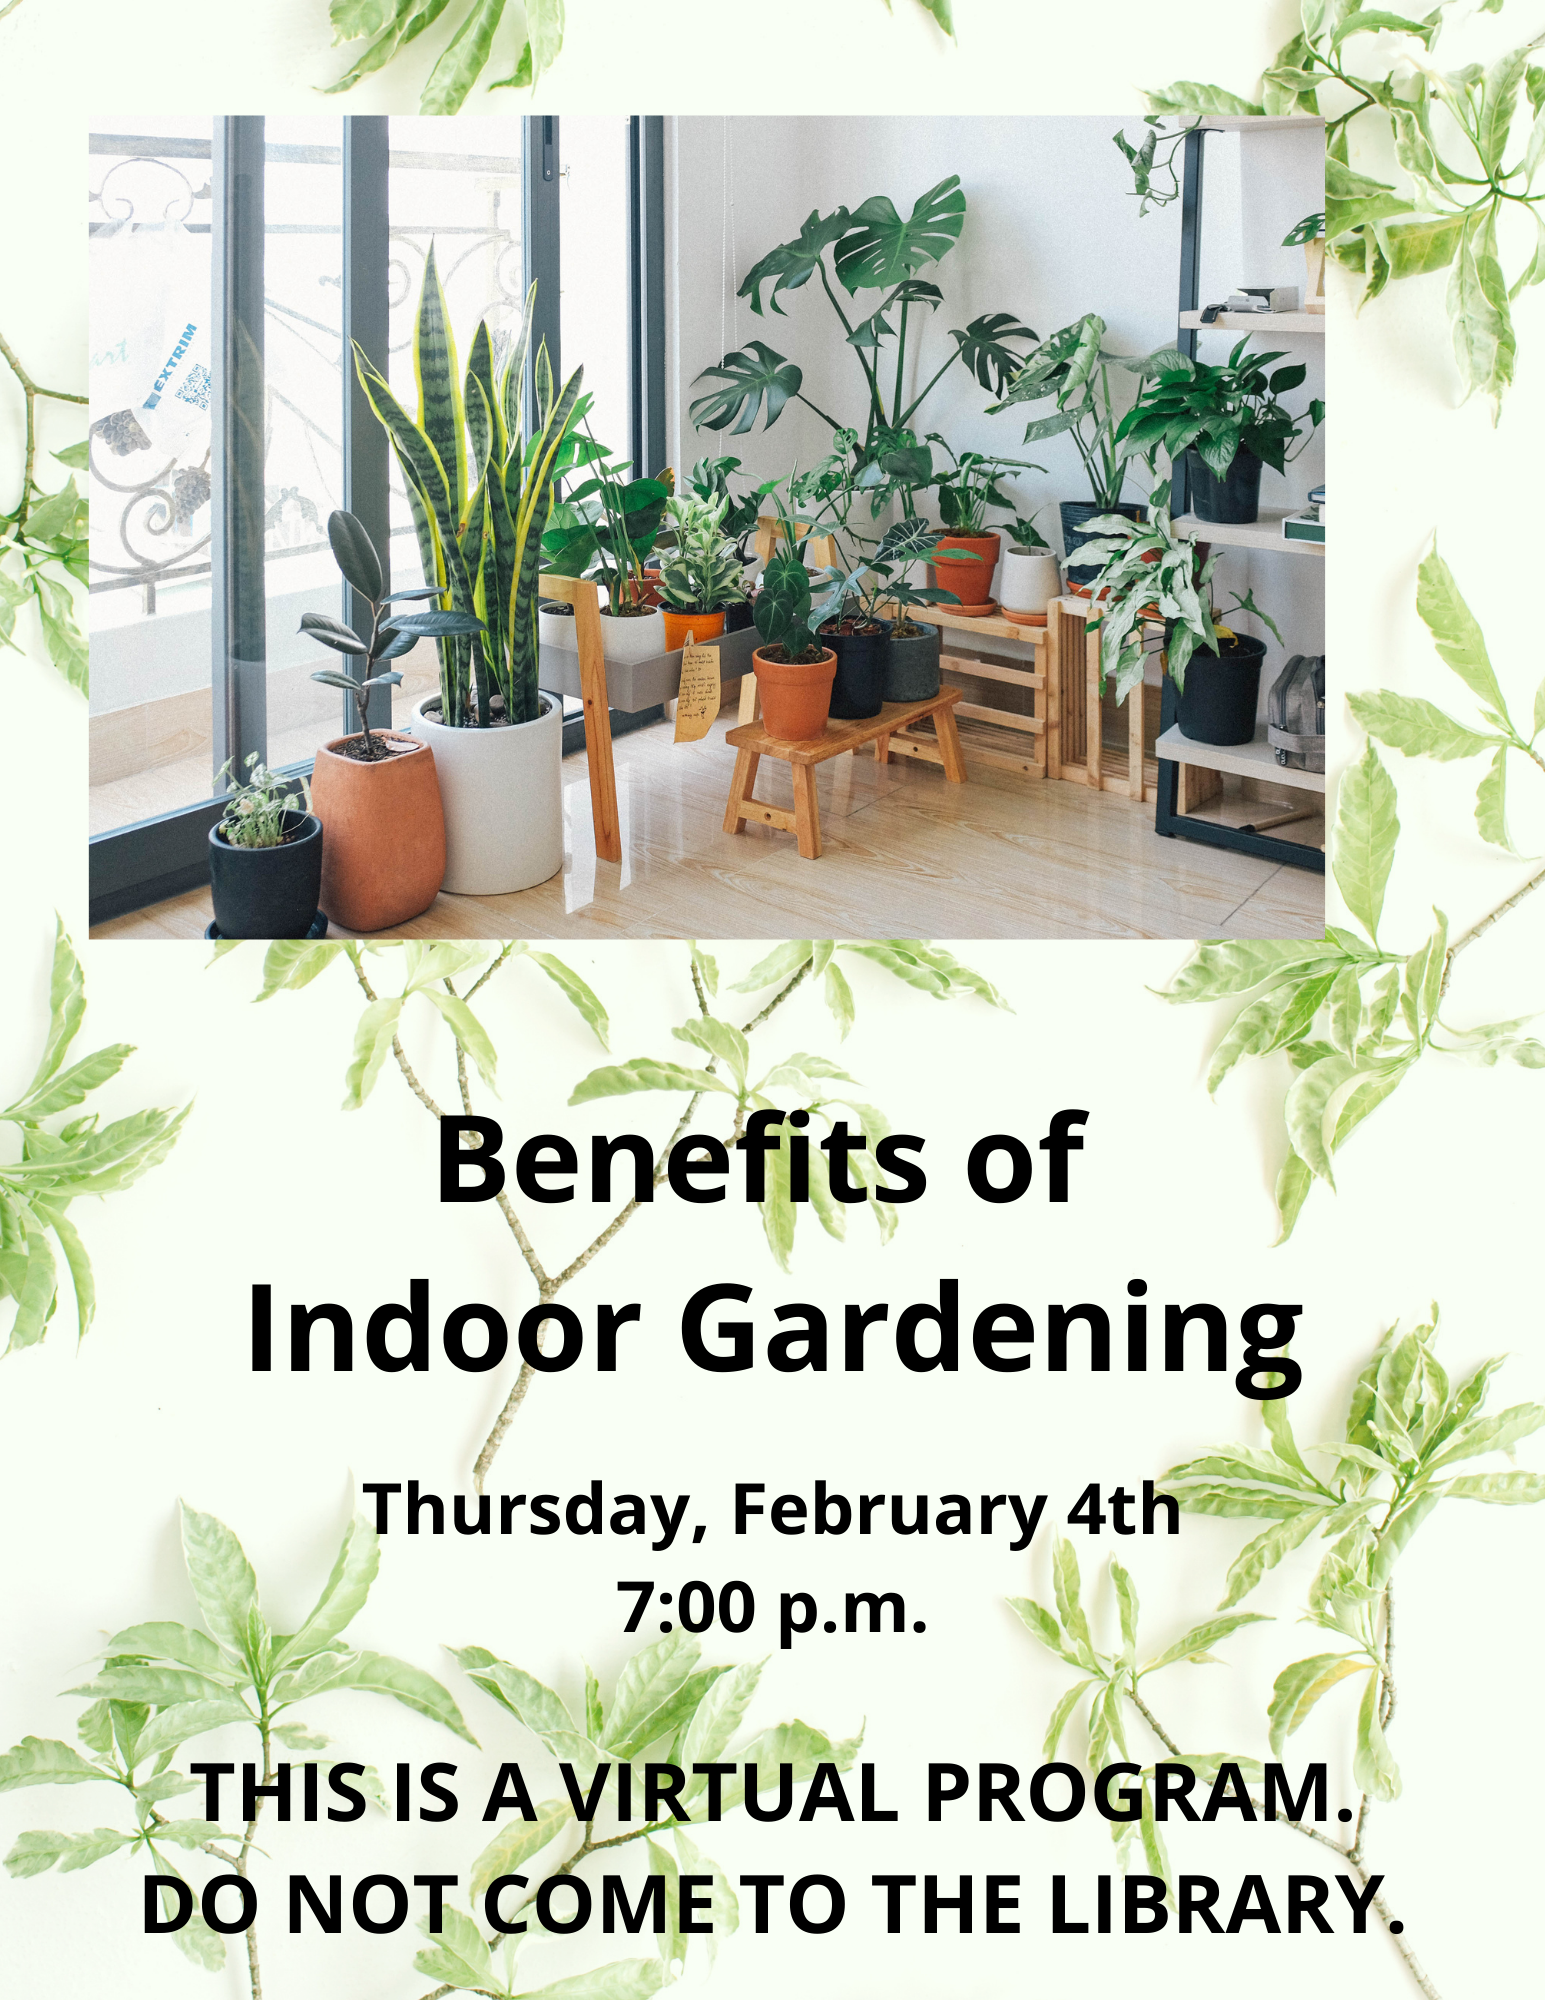 Benefits of Indoor Gardening